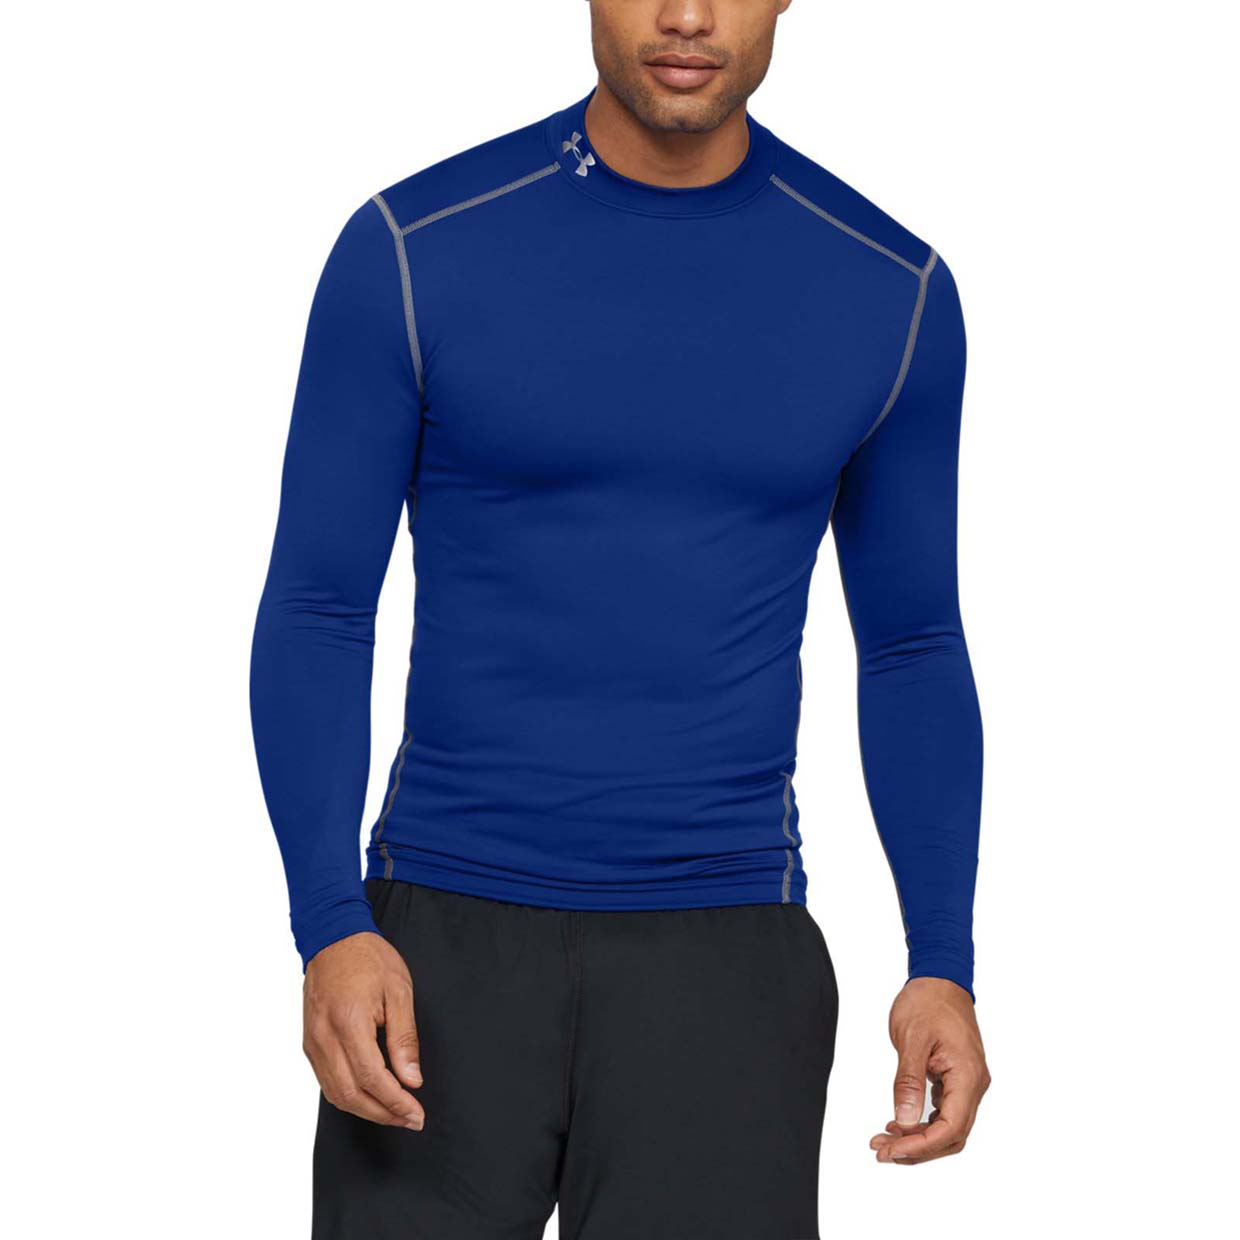 Термолонгслив CG Compression Mock LS Tee Under Armour Синий